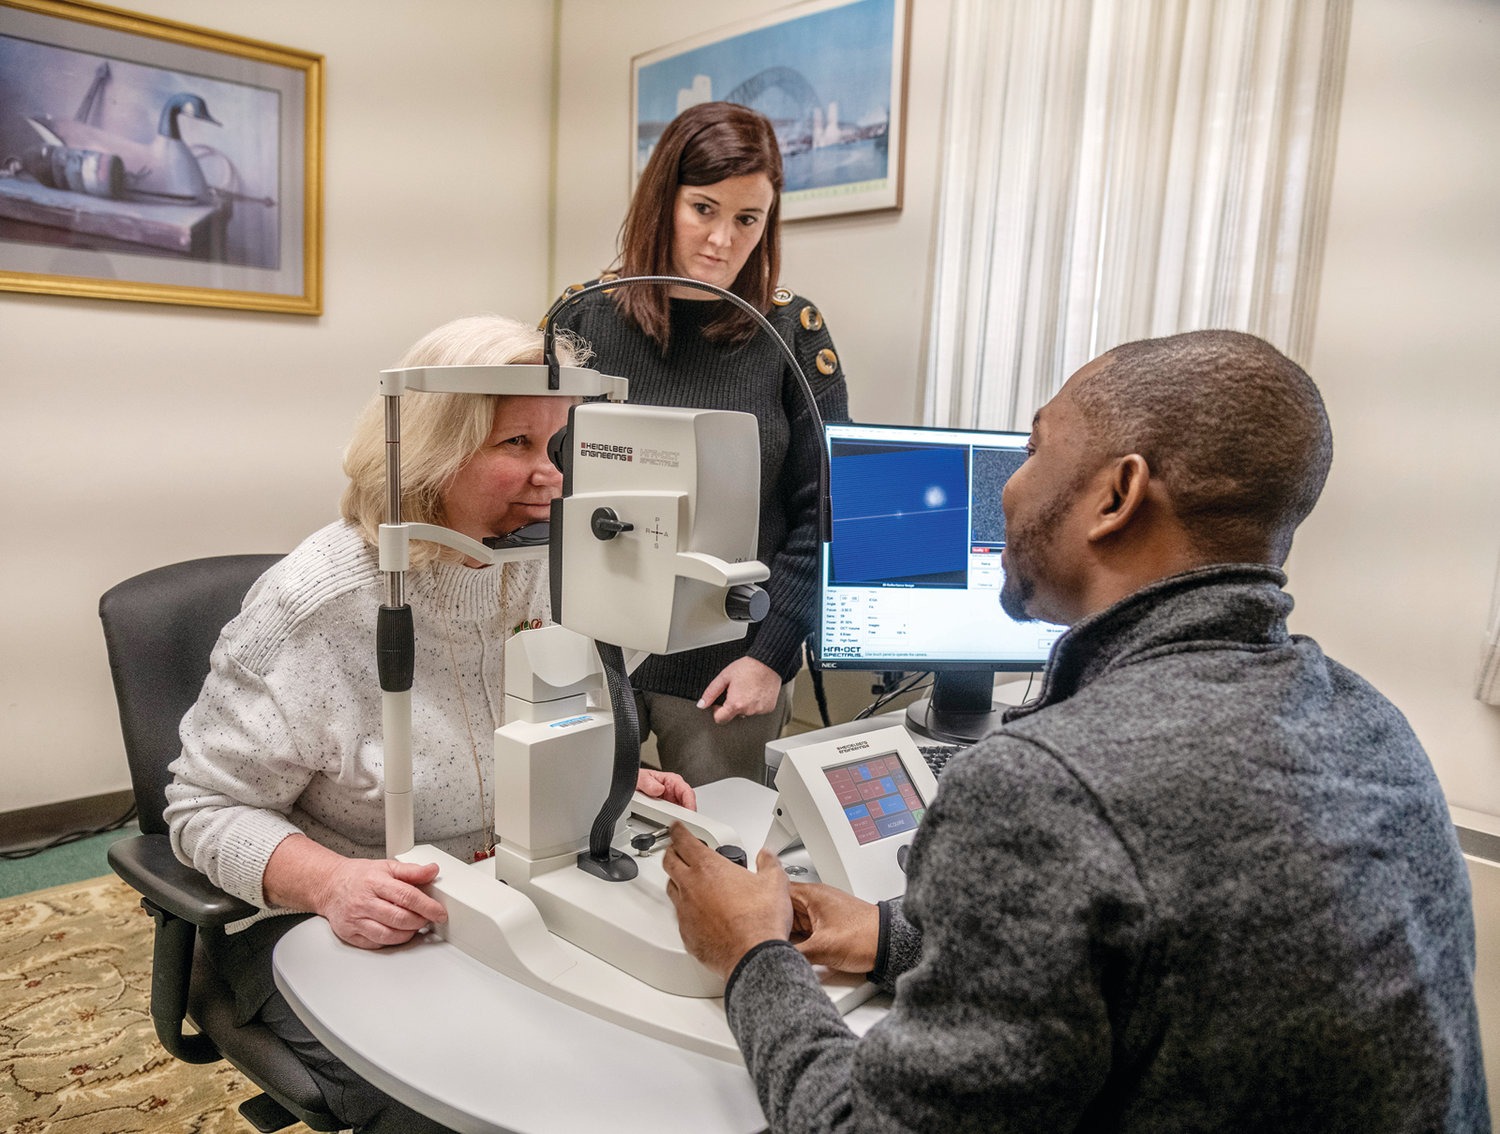 SETTING UP RETINAL SCANS: Team members of the Atlas of Retinal Imaging in Alzheimer's Study (ARIAS) Jessica Alber, Ph.D., Ryan research assistant professor of neuroscience at URI, standing, and Edmund Arthur, seated at right, doctor of optometry and Ph.D. and member of Alber's lab, work with Butler Hospital nurse (name) in preparation for a clinical trial using retinal scans to detect early signs of Alzheimer's disease.